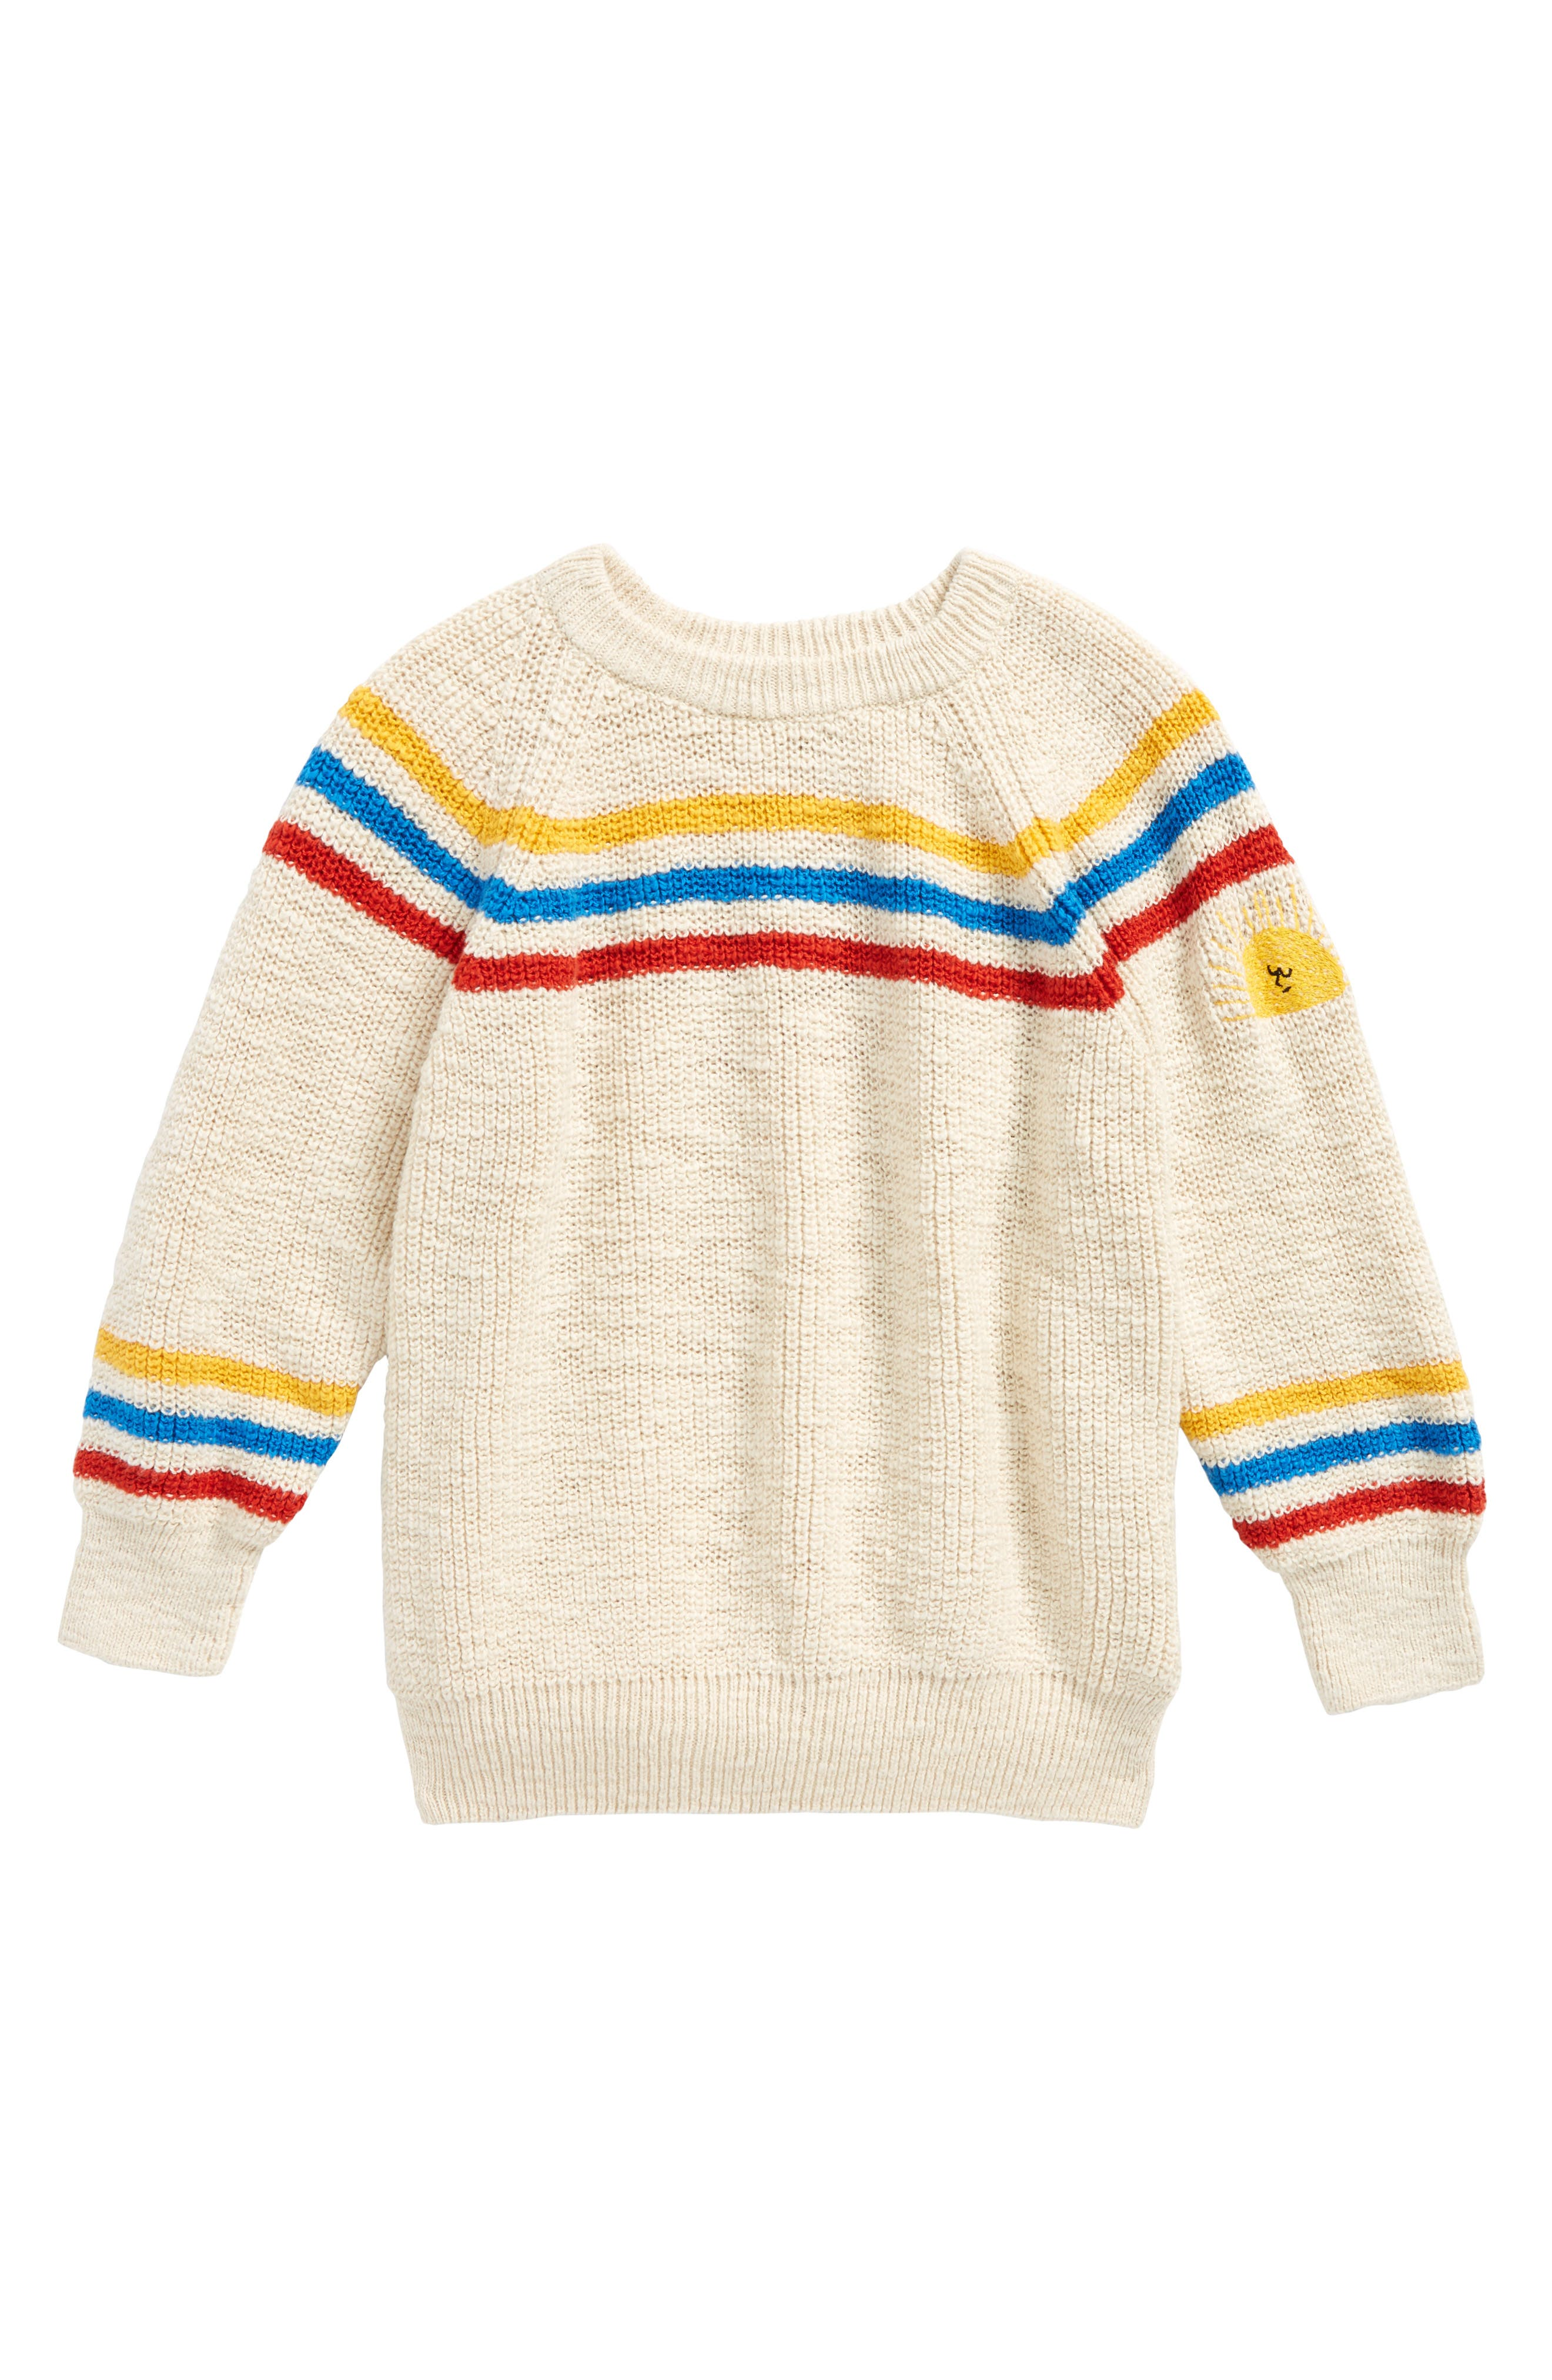 Stripe Sweater,                             Main thumbnail 1, color,                             105